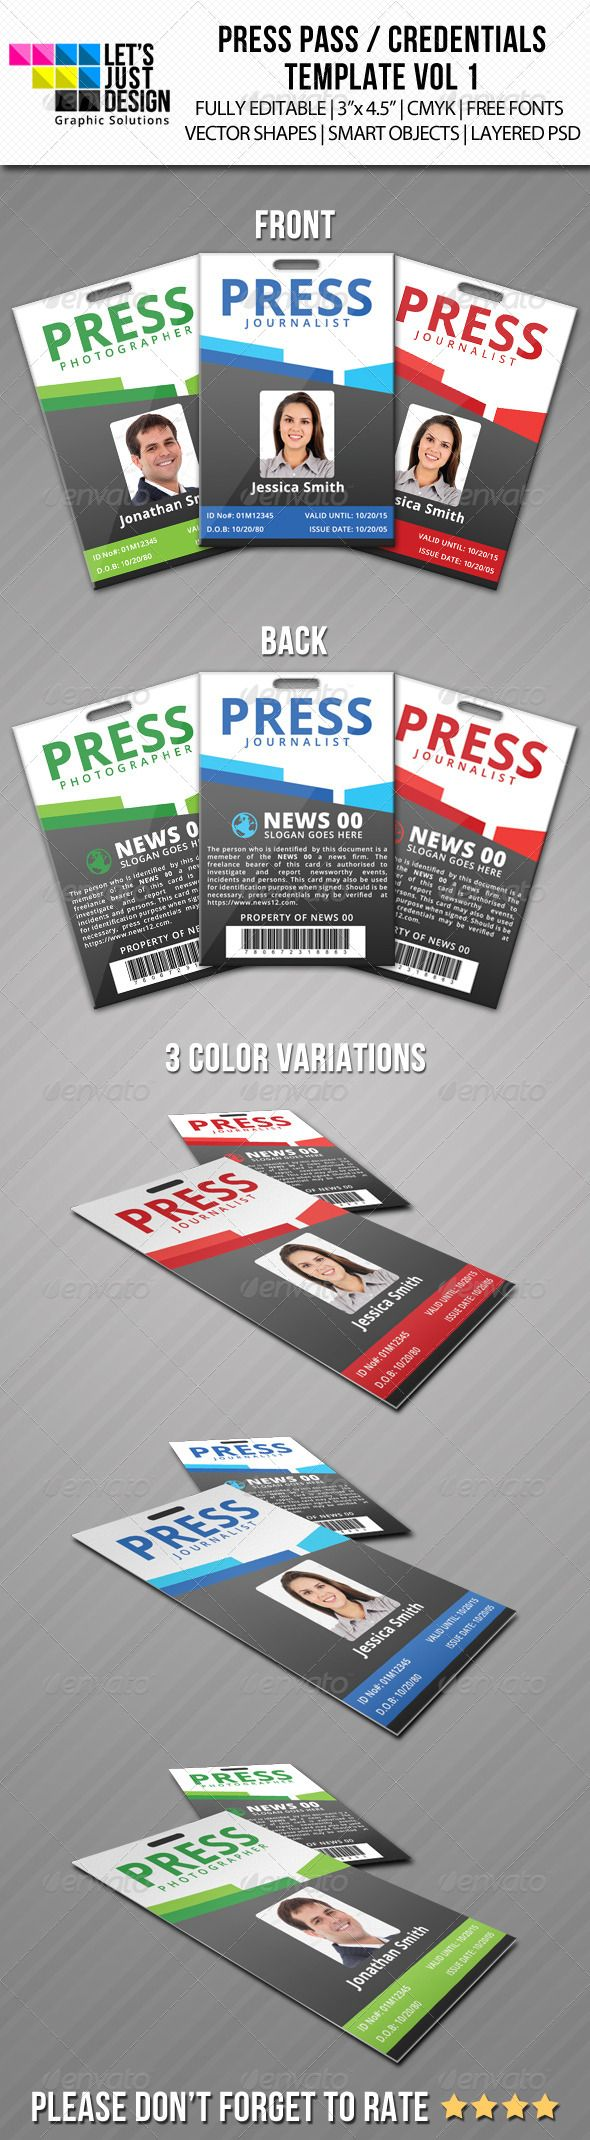 Press Pass / Credentials Template Vol 1 | Photoshop, Template and ...